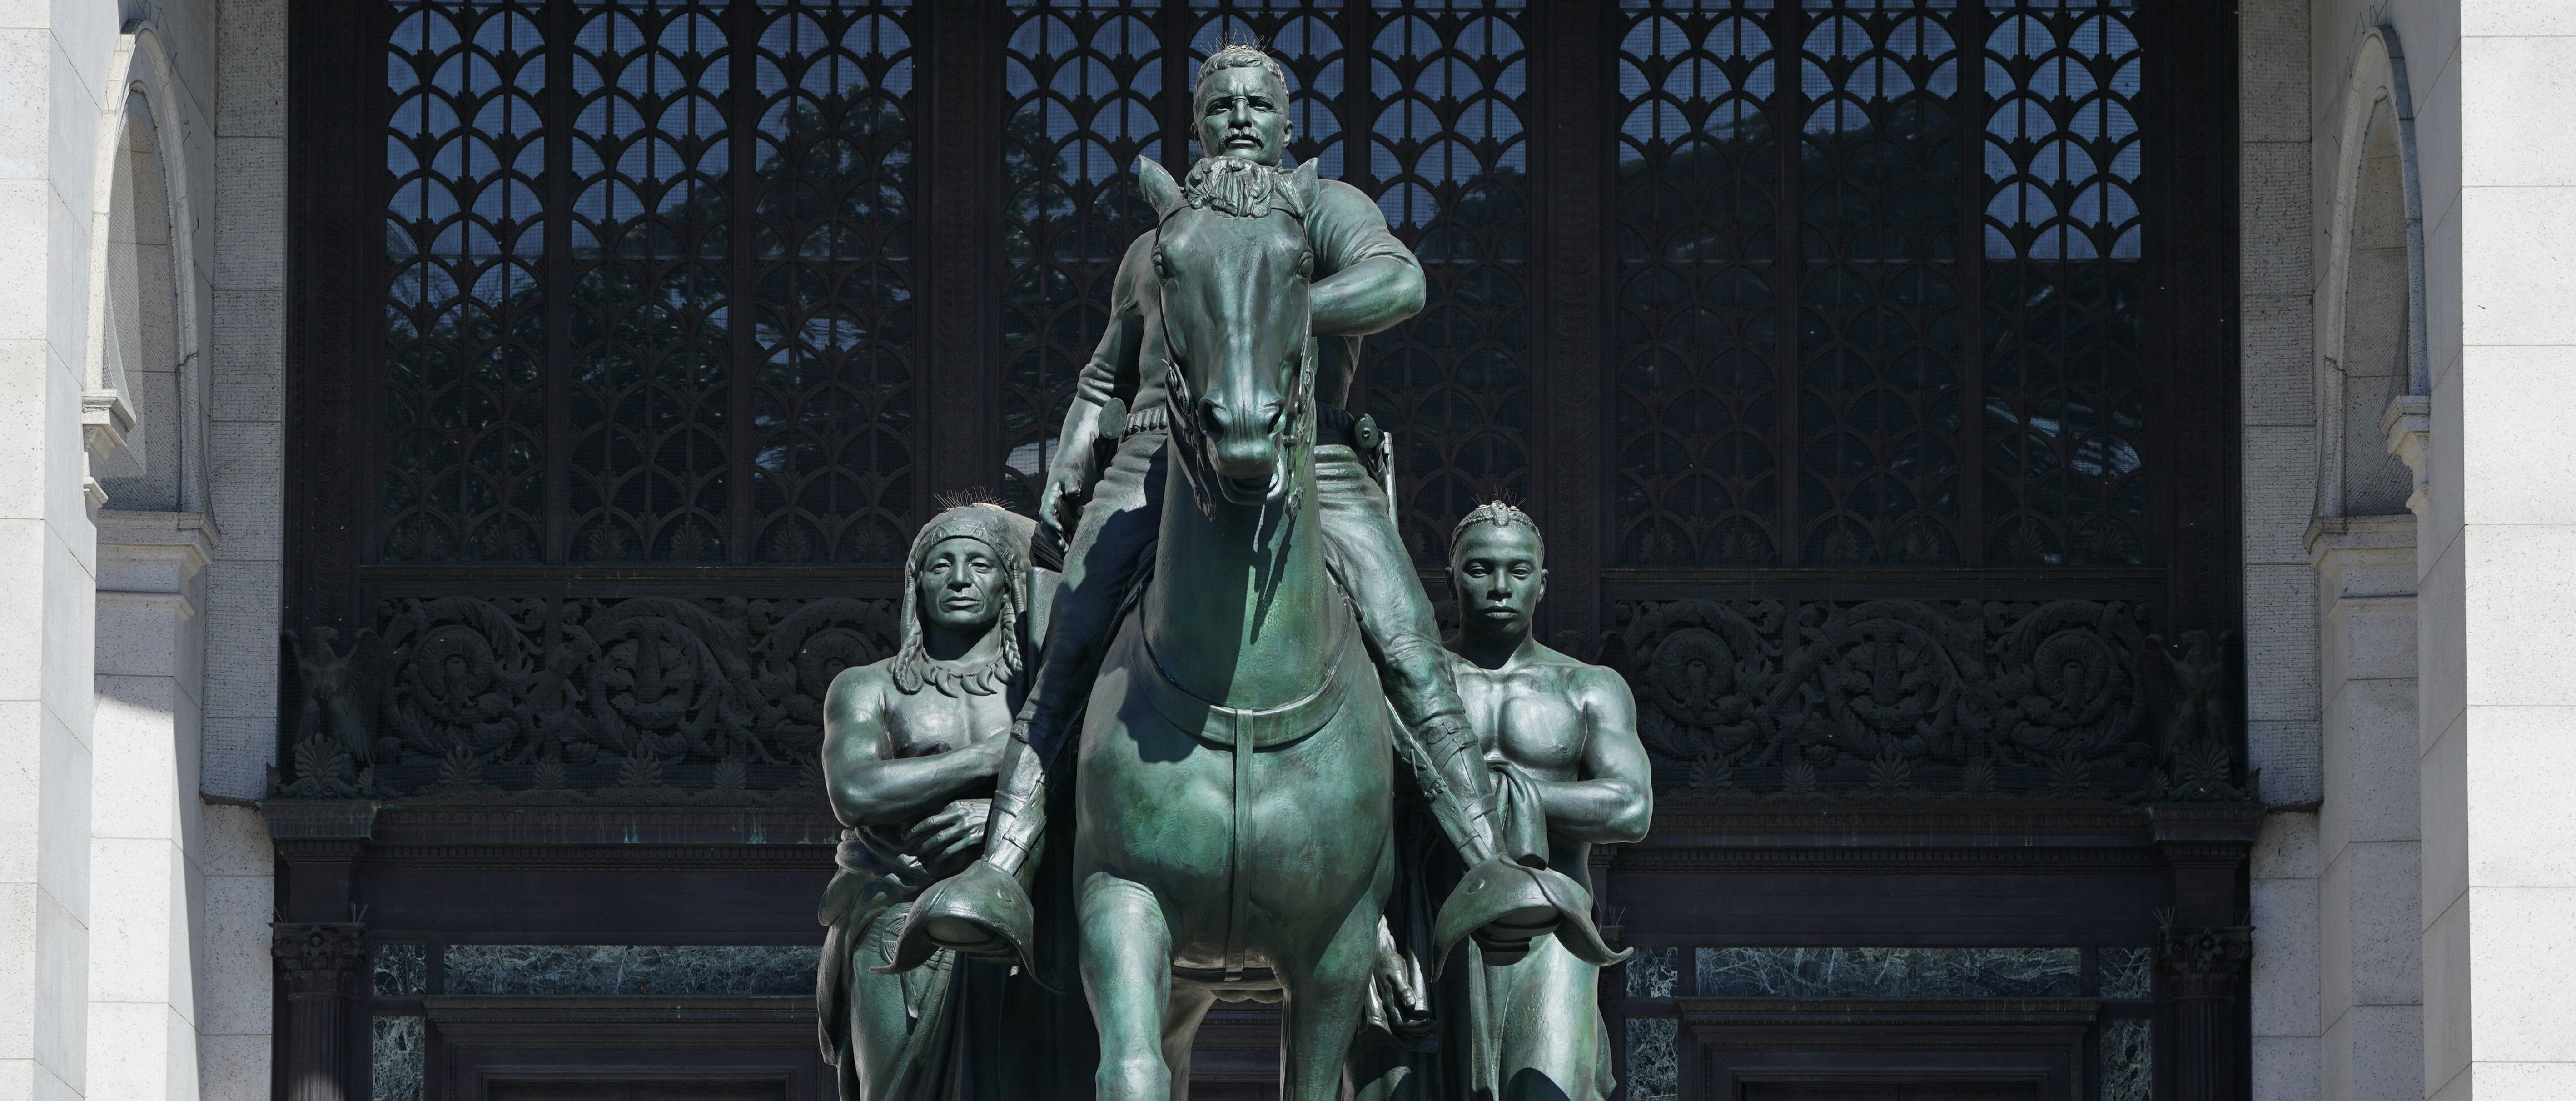 The Theodore Roosevelt Equestrian Statue, which sits on New York City public park land is seen in front of the The American Museum of Natural History on Central Park West entrance June 22,2020. - The American Museum of Natural History will remove the Theodore Roosevelt from its entrance after objections that it symbolizes colonial expansion and racial discrimination, Mayor Bill de Blasio said. (Photo by TIMOTHY A. CLARY/AFP via Getty Images)